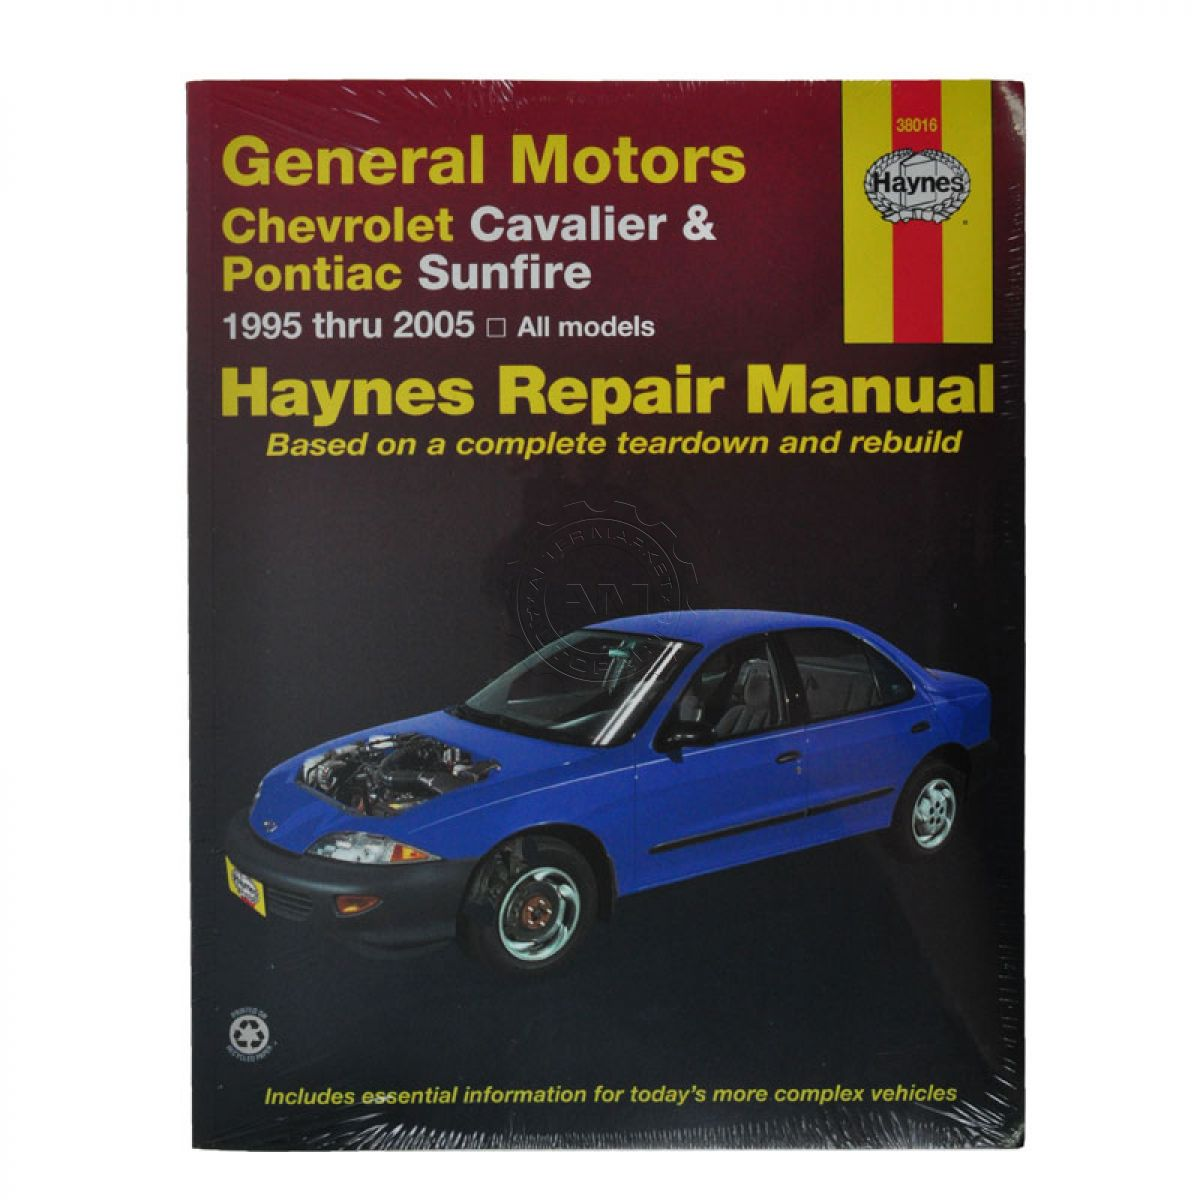 haynes repair manual 2000 chevy cavalier rh haynes repair manual 2000 chevy cavalier temp Haynes Catalogue Auto Repair Manual